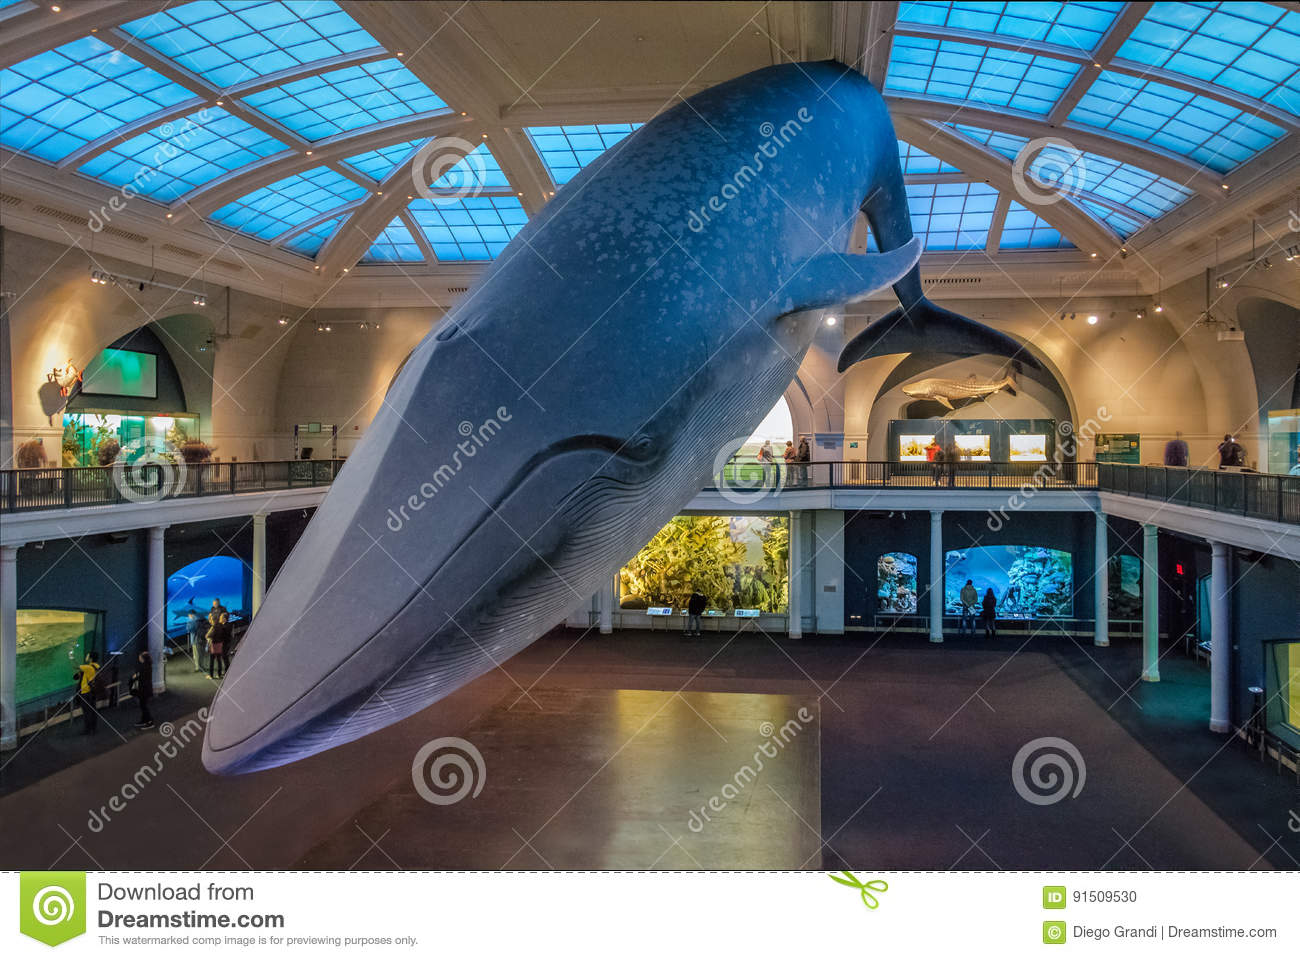 Blue Whale at Ocean Hall of the American museum of Natural History AMNH - New York, USA